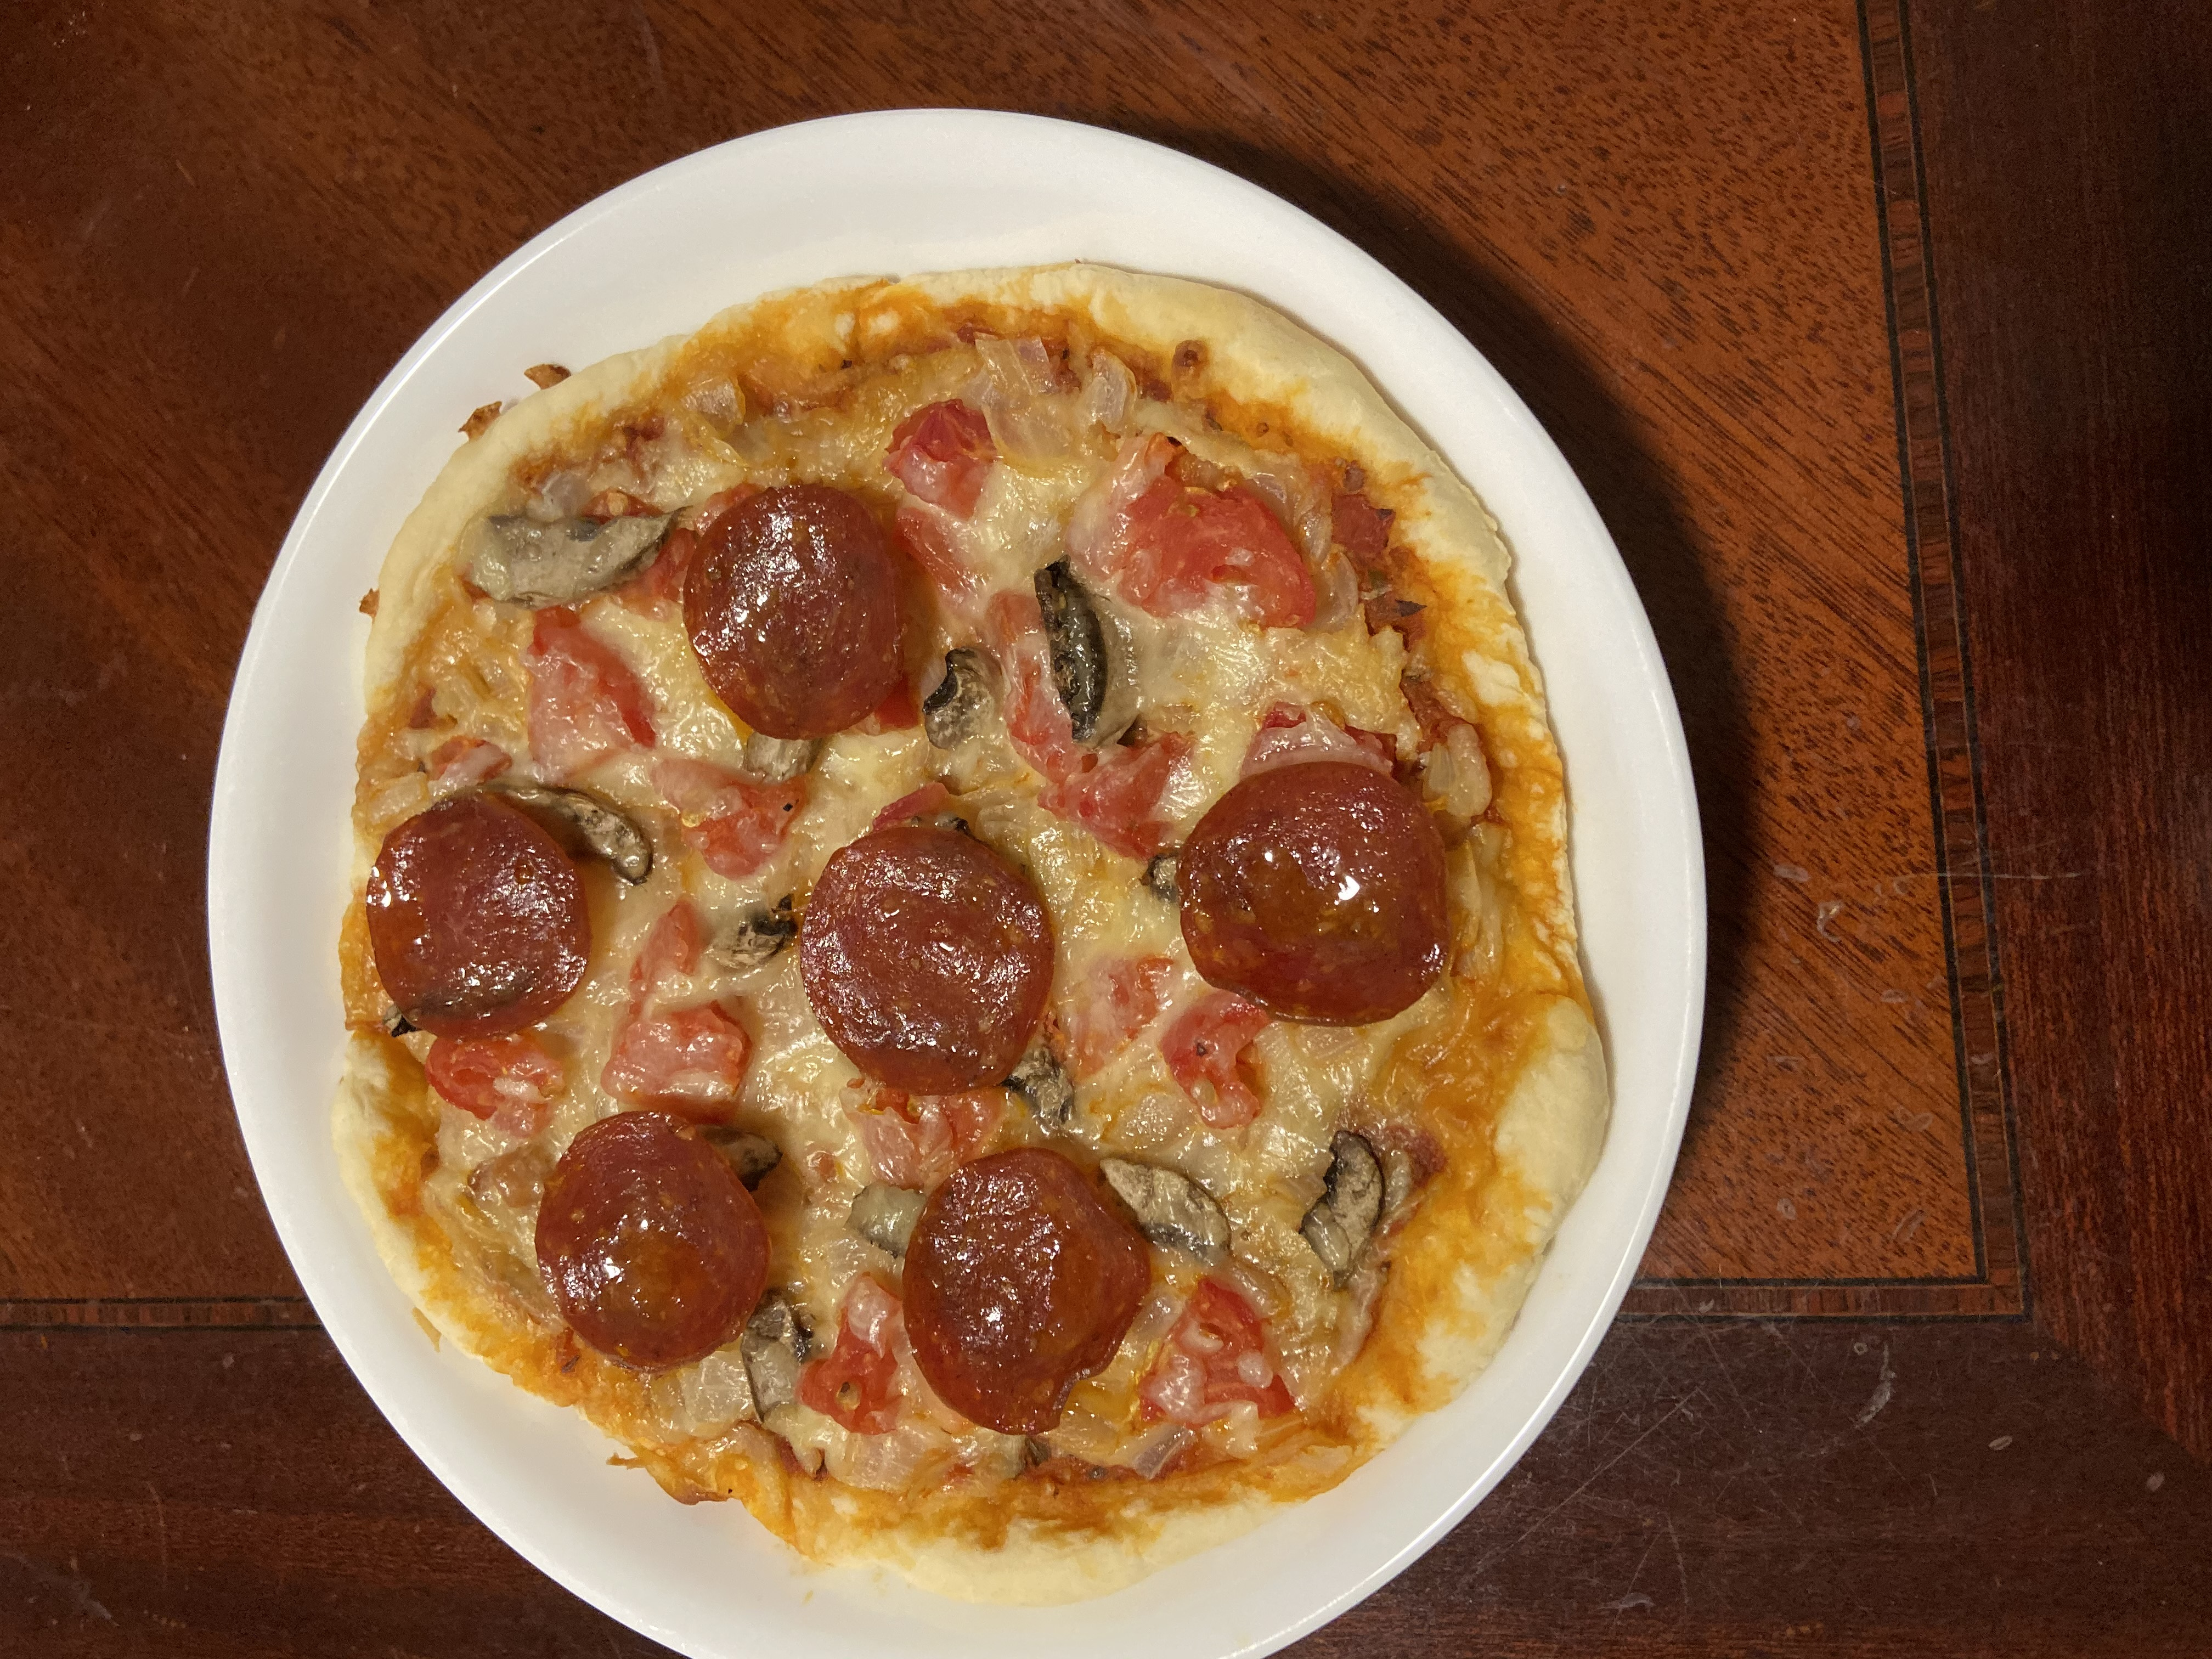 A homemade pizza topped with cheese, pepperoni, mushrooms and tomatoes. Photo taken by the author.